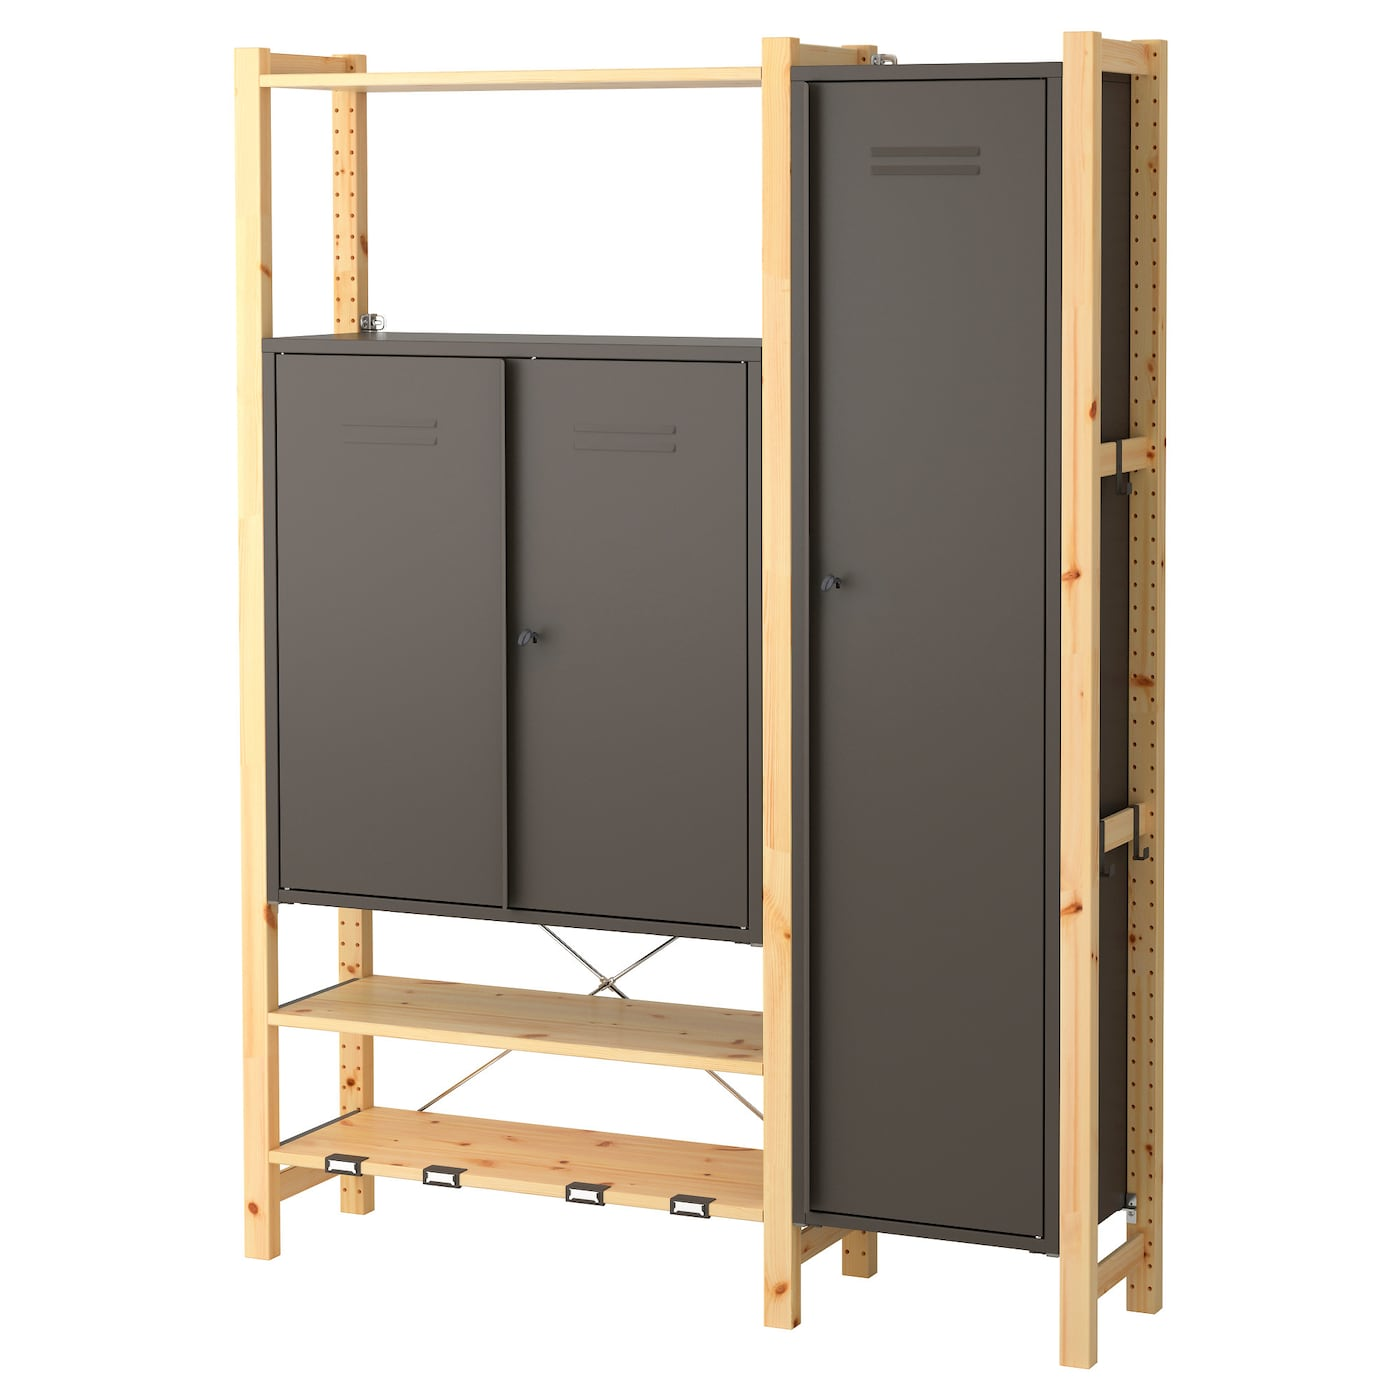 ivar 2 sections shelves cabinets pine grey 134 x 30 x 179 cm ikea. Black Bedroom Furniture Sets. Home Design Ideas